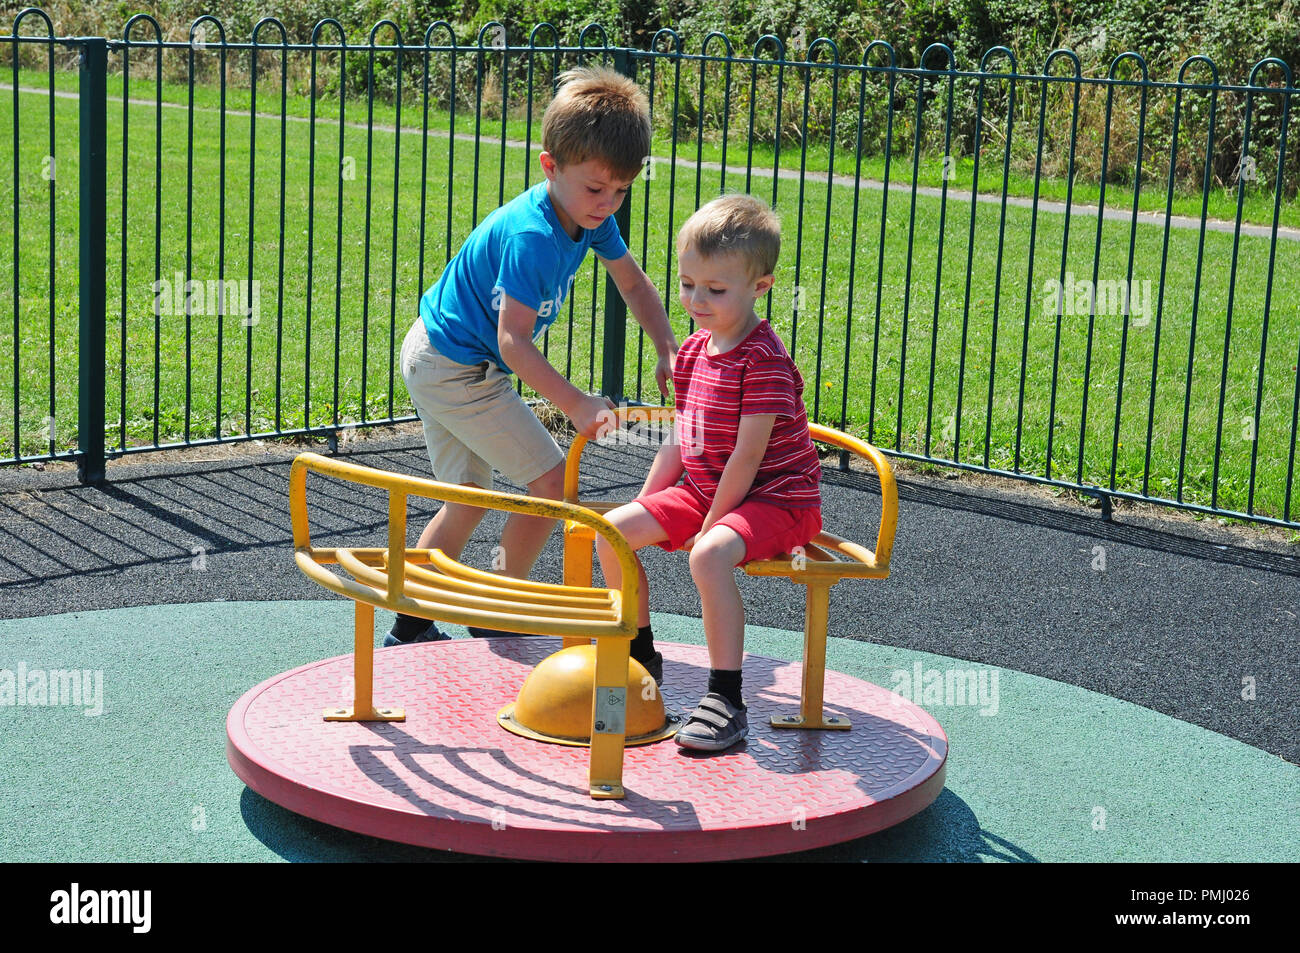 Two small boys playing on a roundabout in a play park. Stock Photo